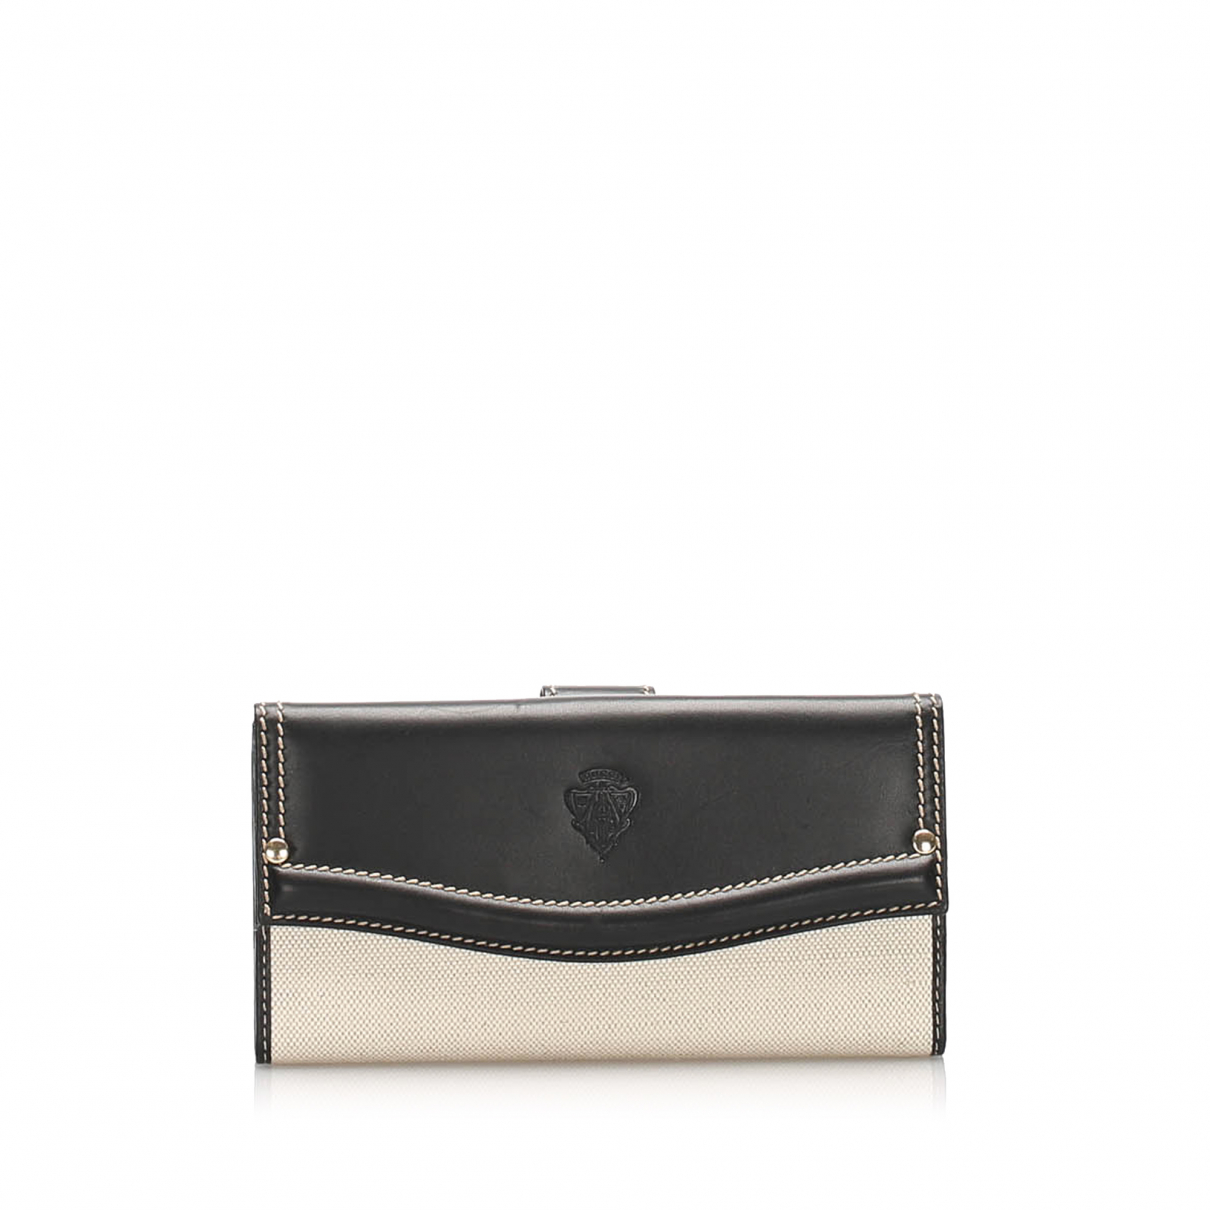 Gucci N White Cloth wallet for Women N